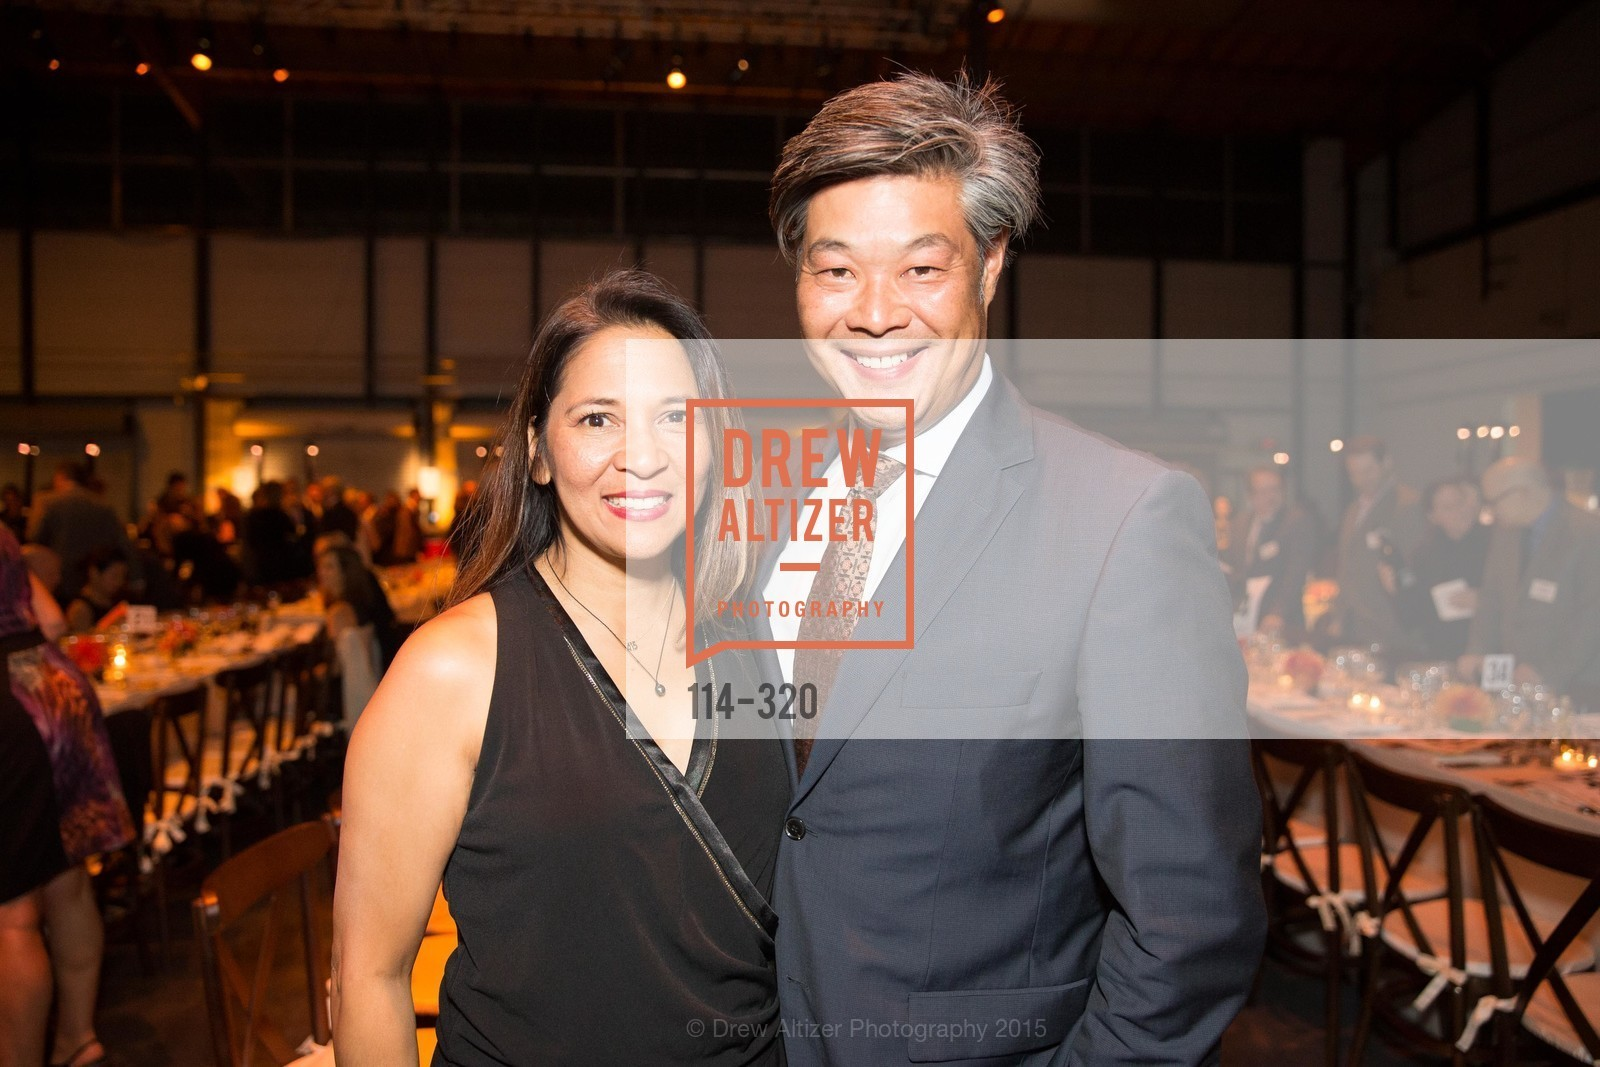 Charlene Fong, Rodney Fong, SF - Marin Food Bank Presents ONE BIG TABLE, SF- Marin Food Bank. 900 Pennsylvania Ave, September 26th, 2015,Drew Altizer, Drew Altizer Photography, full-service agency, private events, San Francisco photographer, photographer california